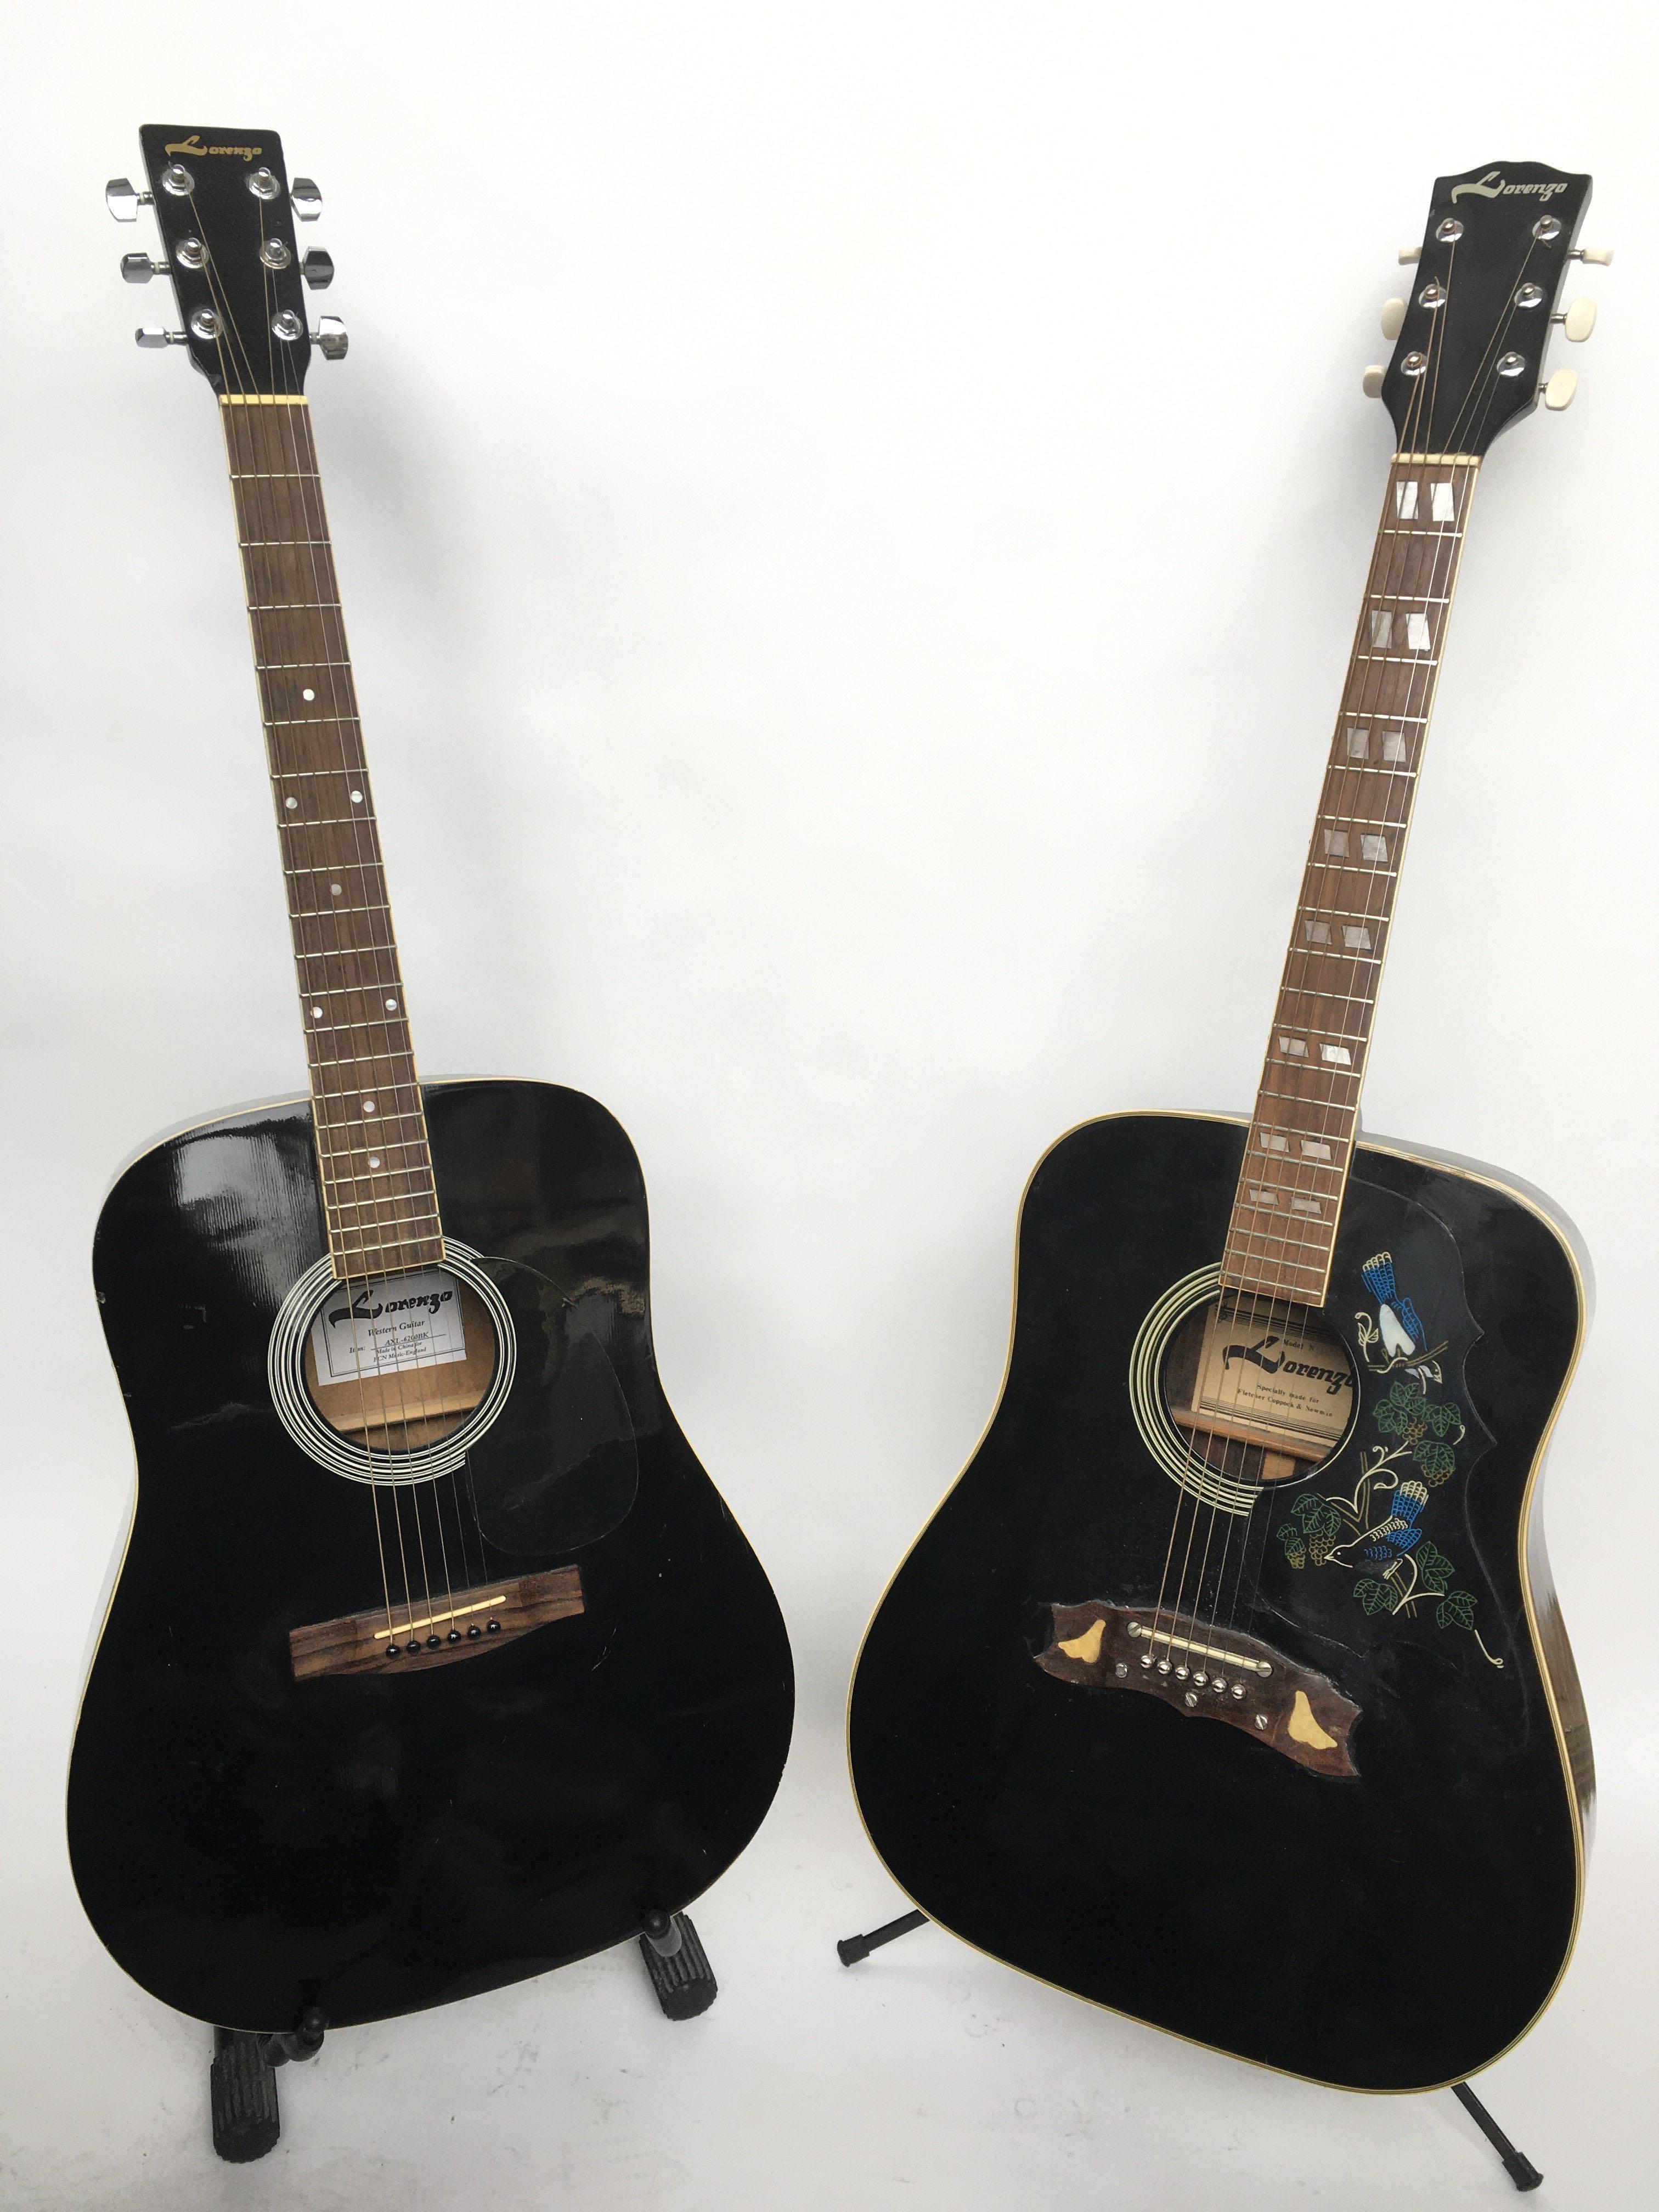 Two Lorenzo acoustic guitars comprising an Axl 620